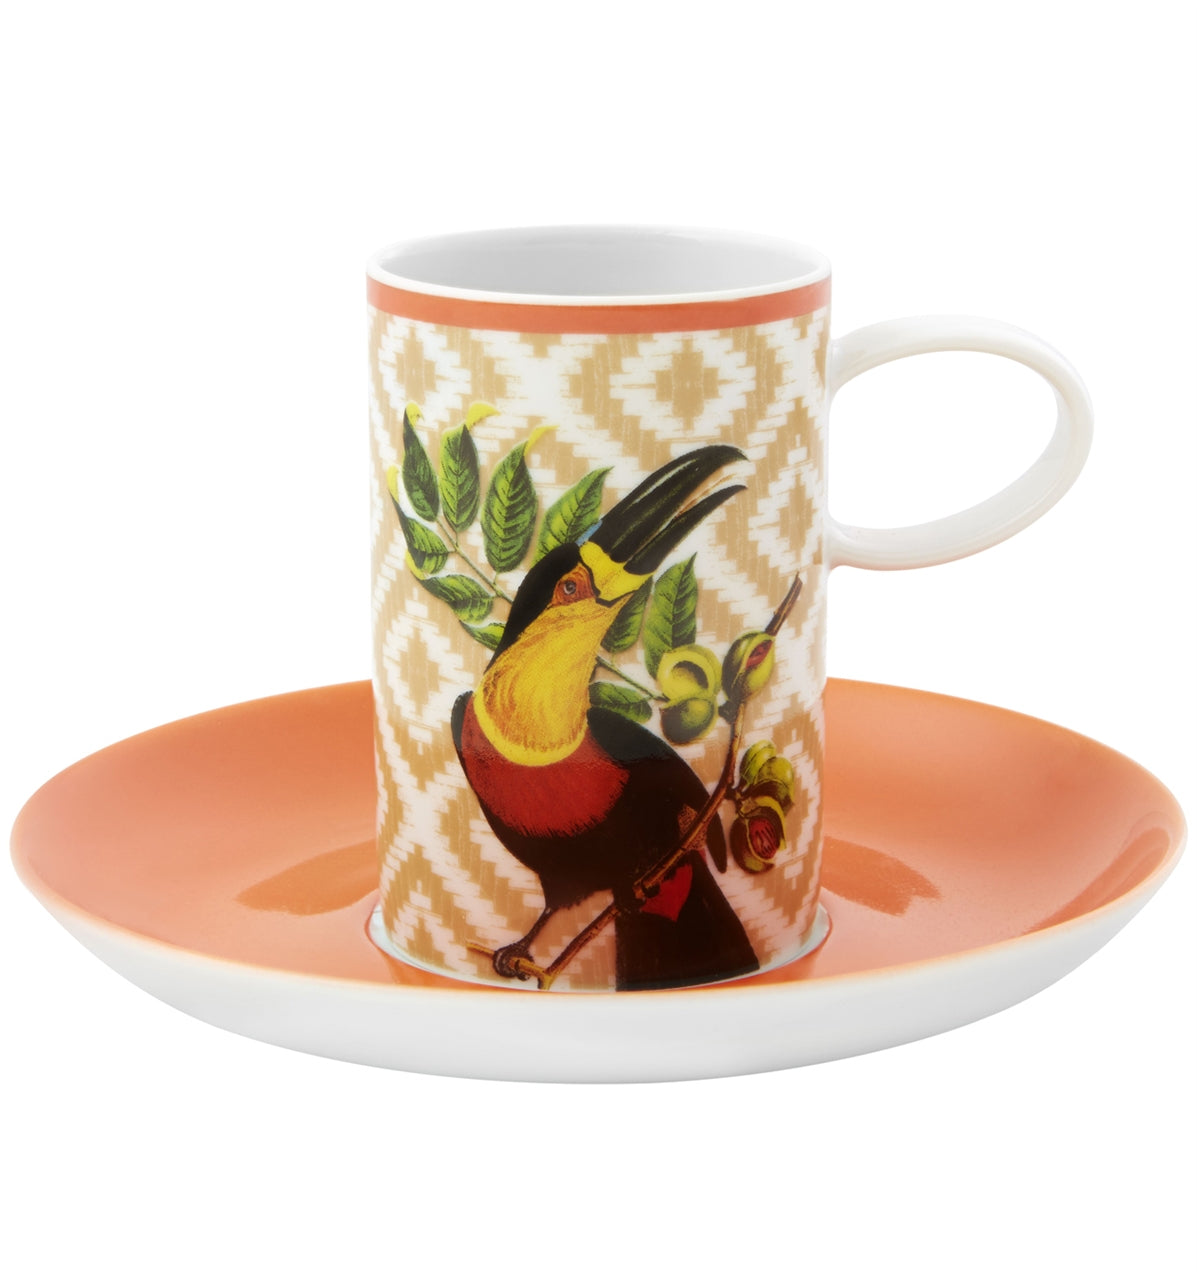 Olhar o Brasil Coffee Cup & Saucer Set of 4